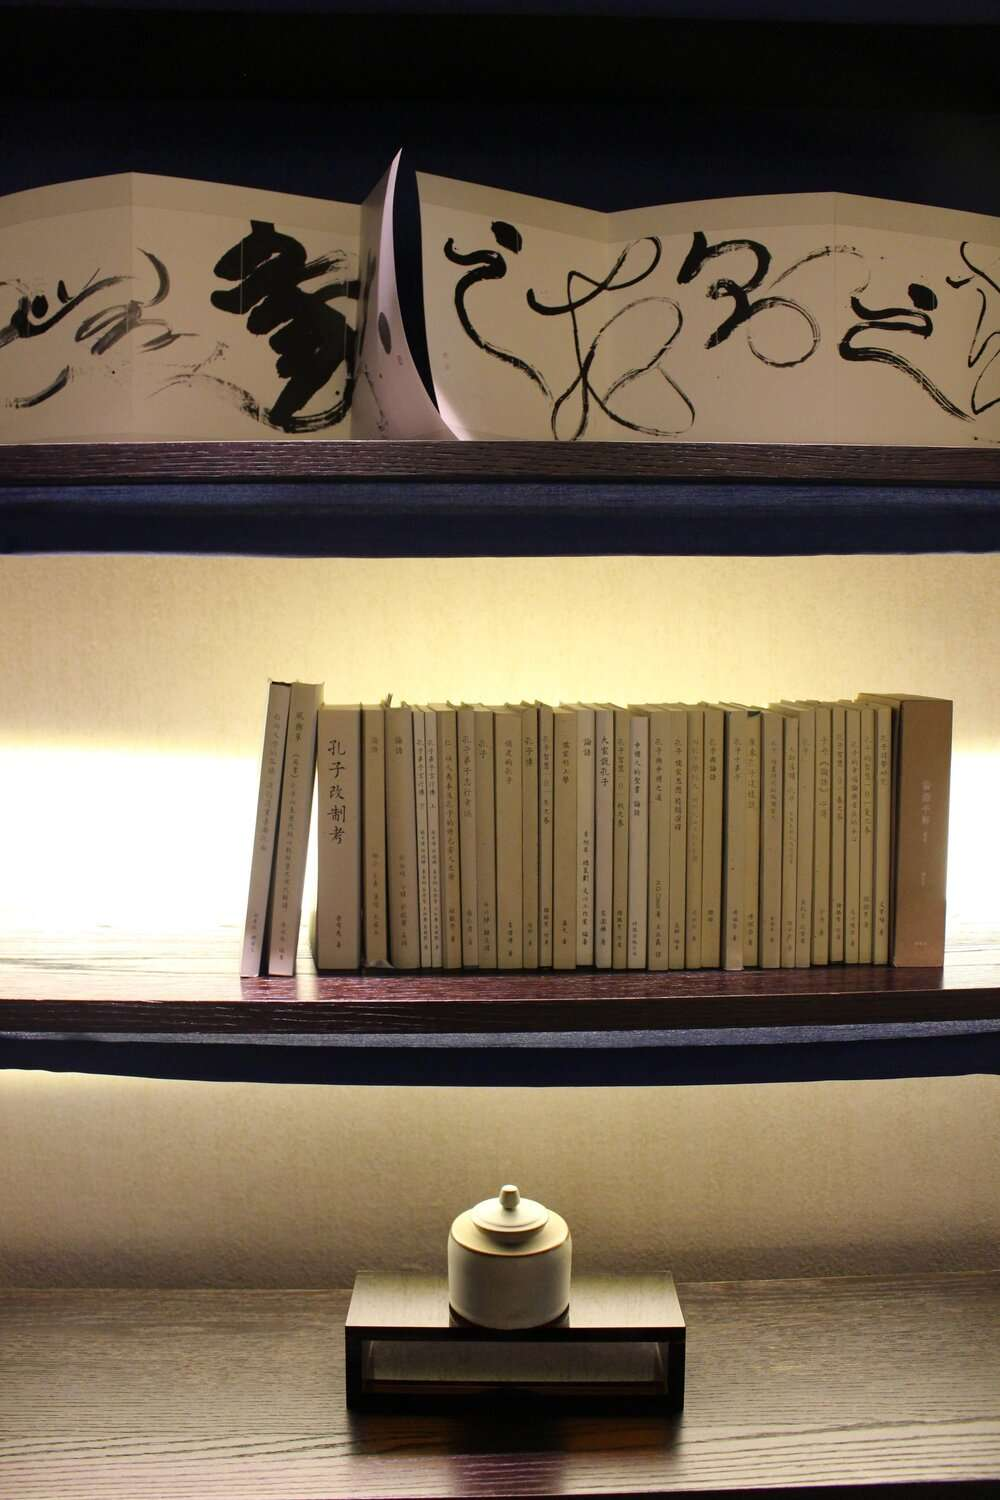 shelves with collectable books and calligraphy art work on display at Silks Place Tainan